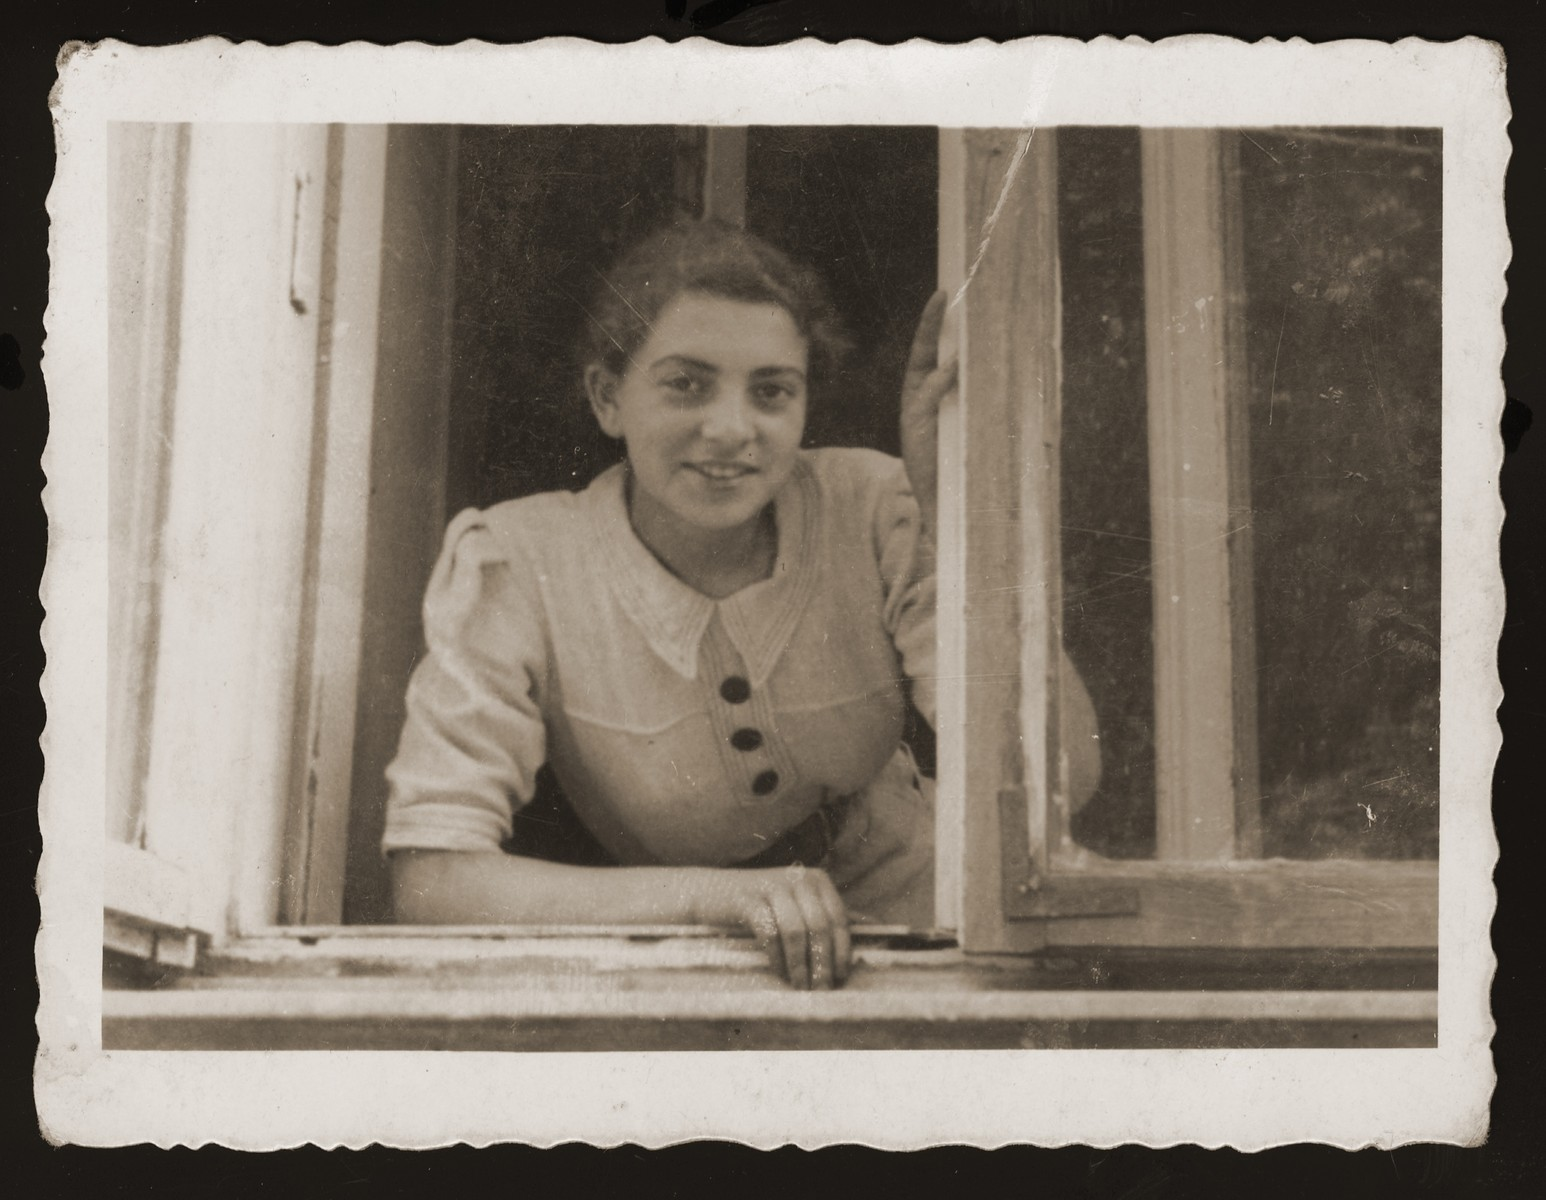 Estera Ajzen poses in the window of her home in Chelm.